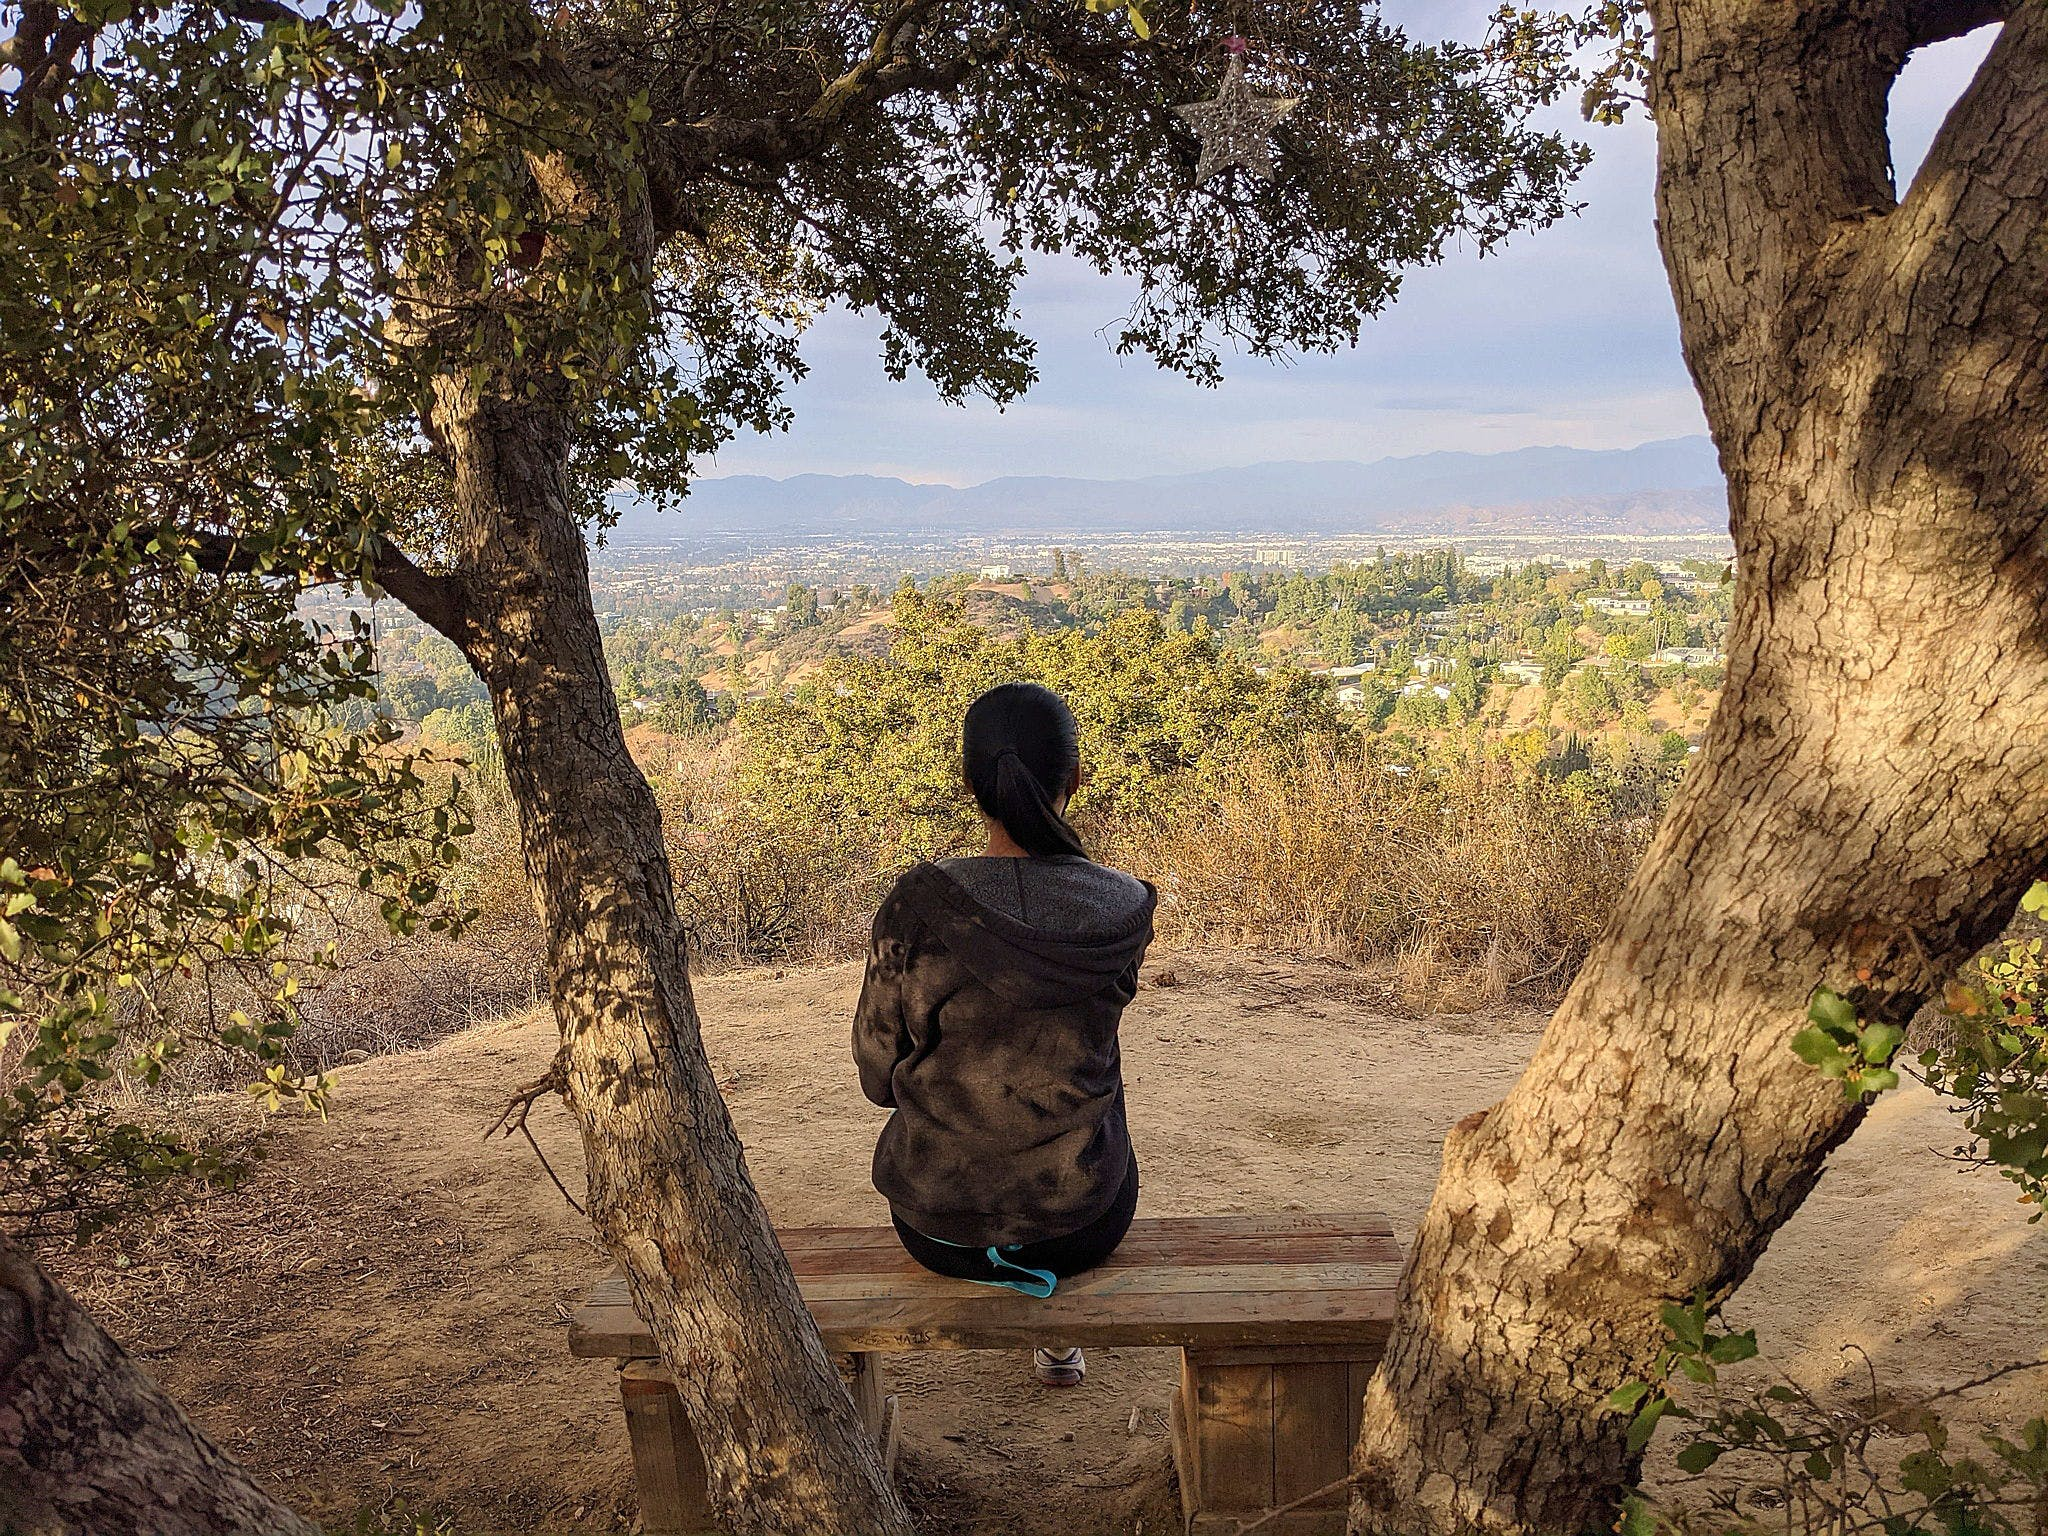 Woman sitting at bench in Fryman Canyon overlooking the San Fernando Valley view